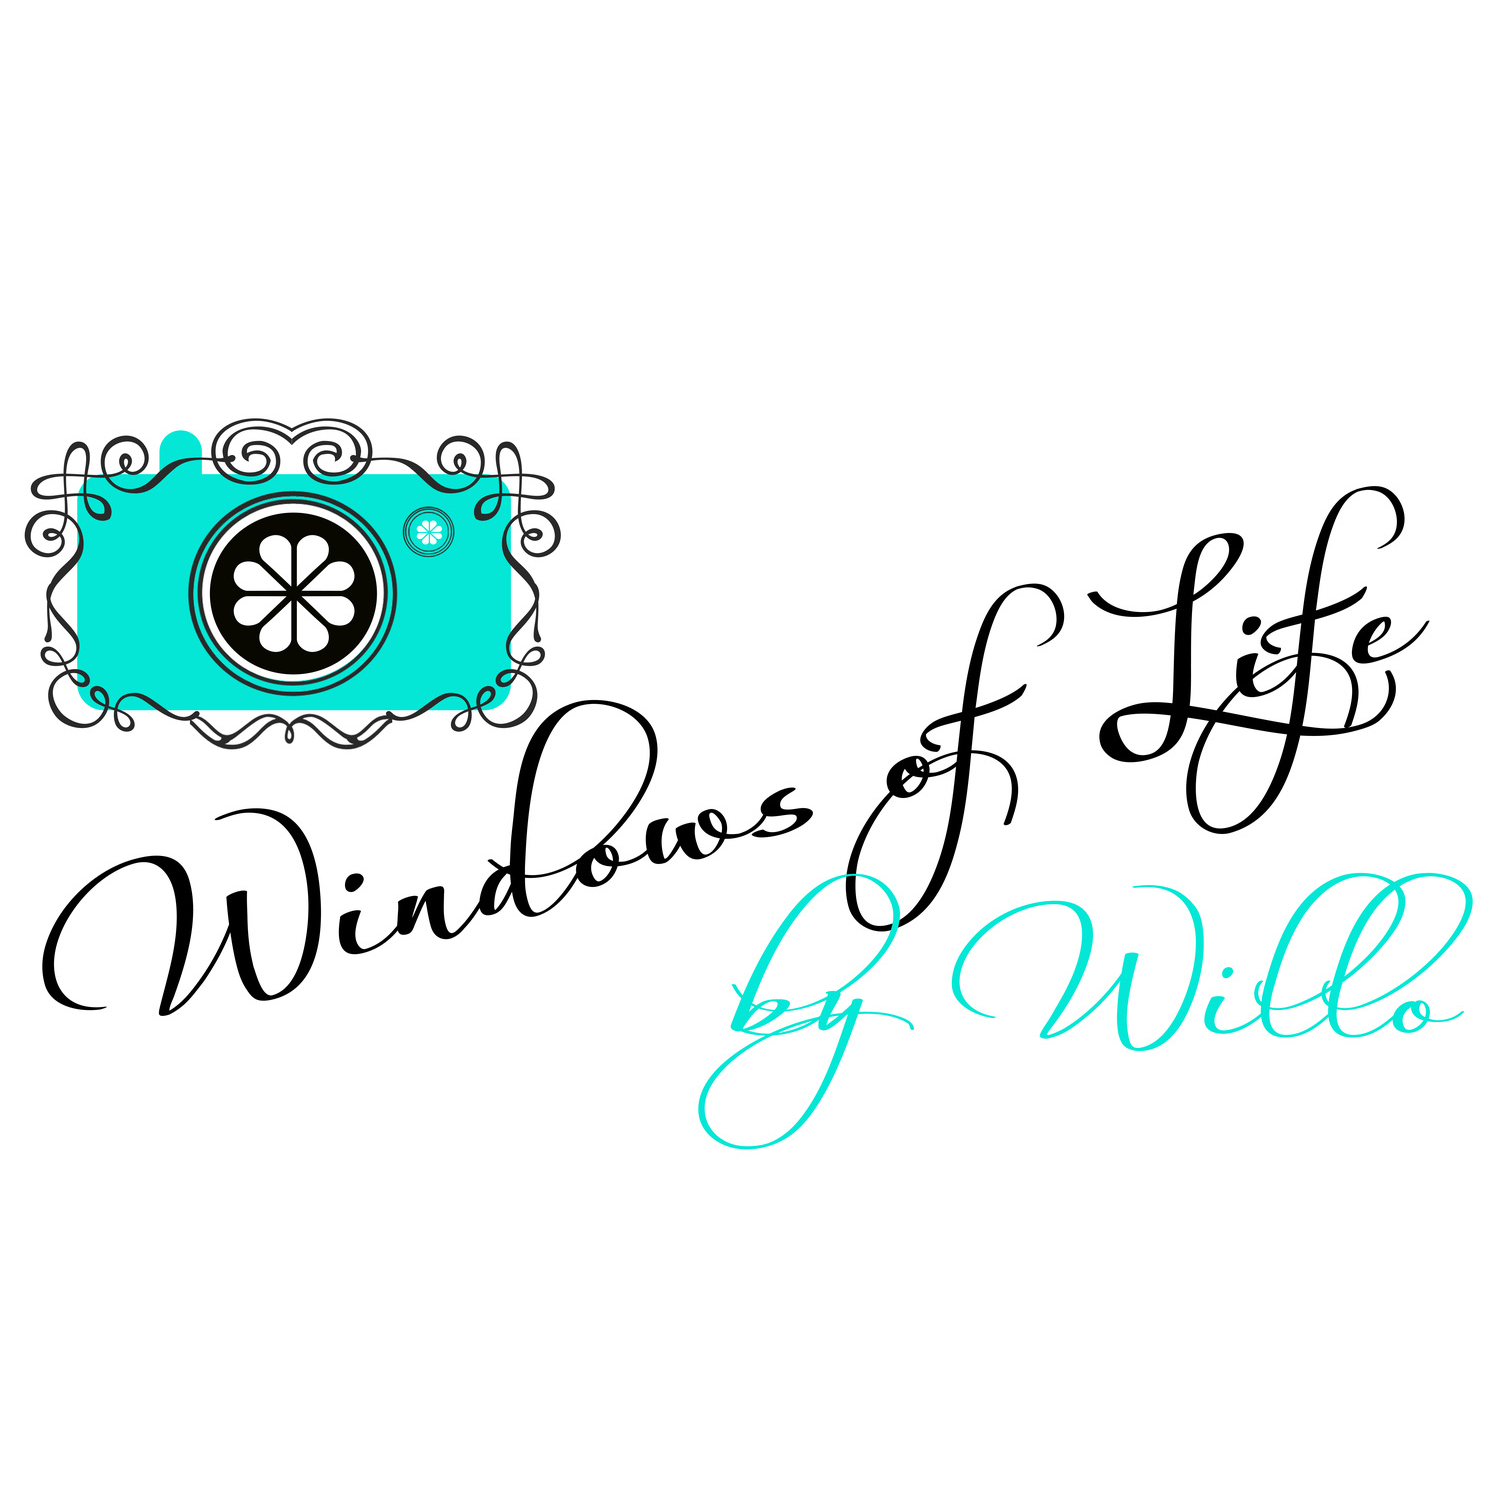 Windows of Life by Willo